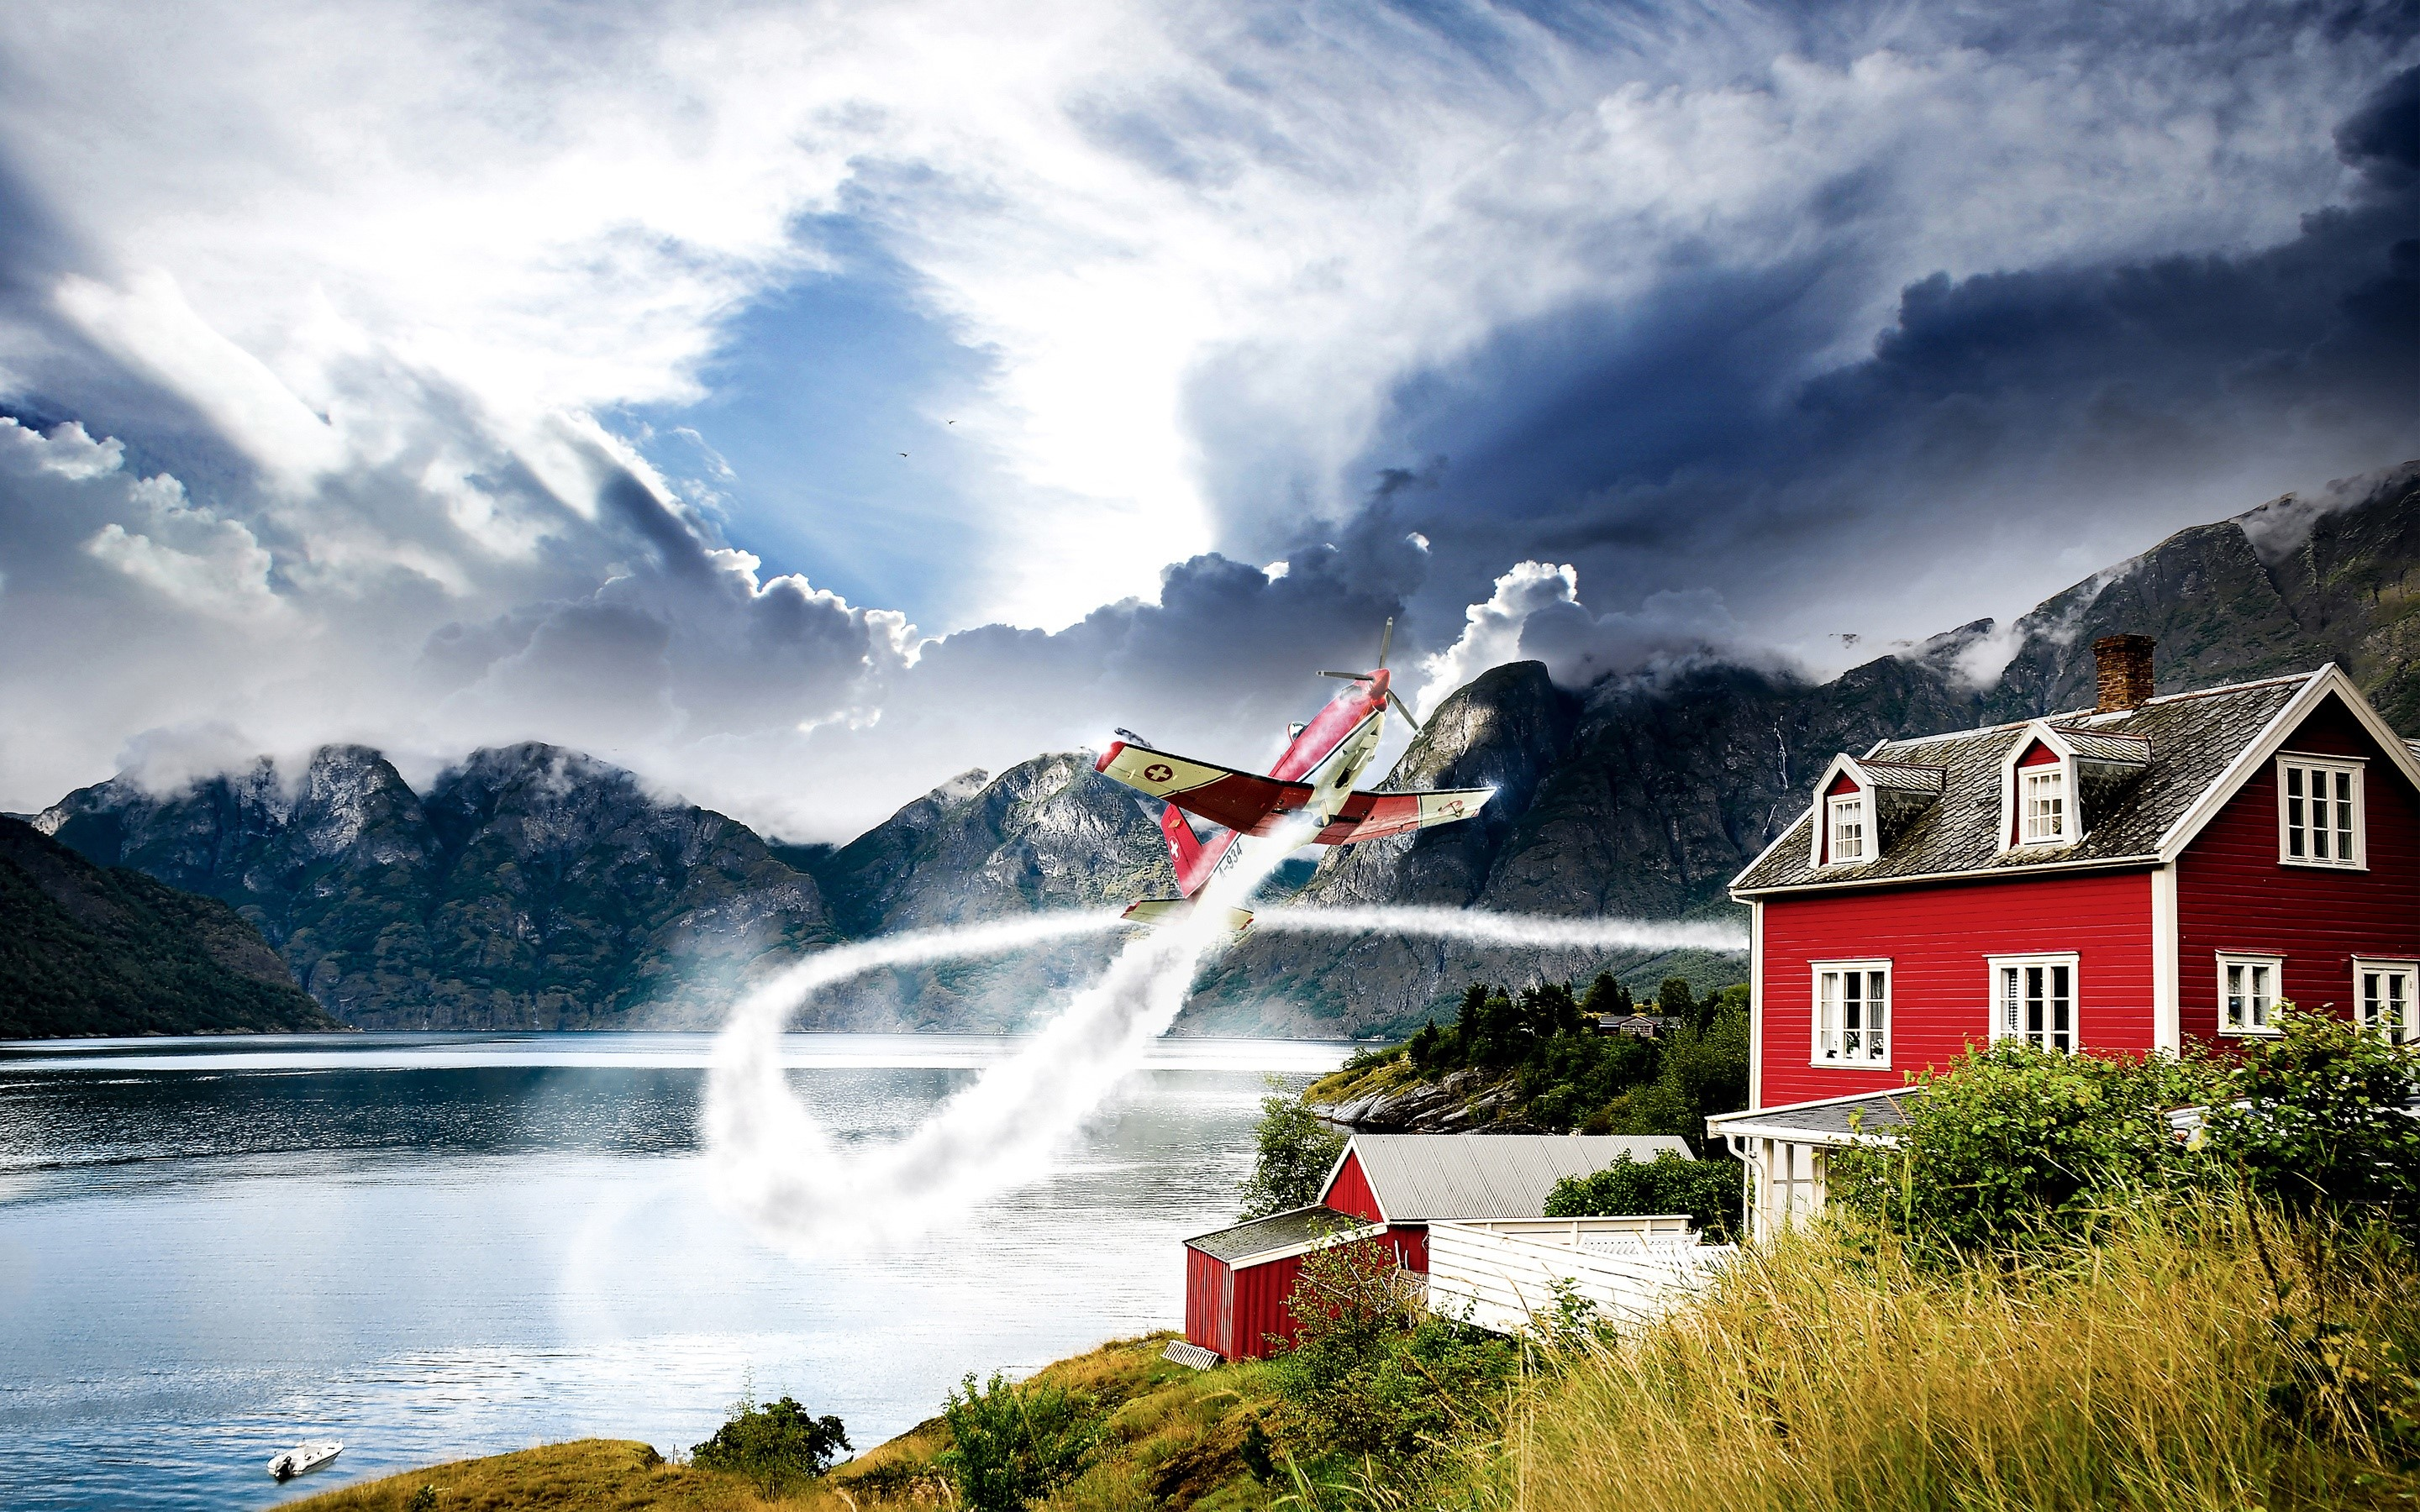 Wallpaper Norwegian Aviation